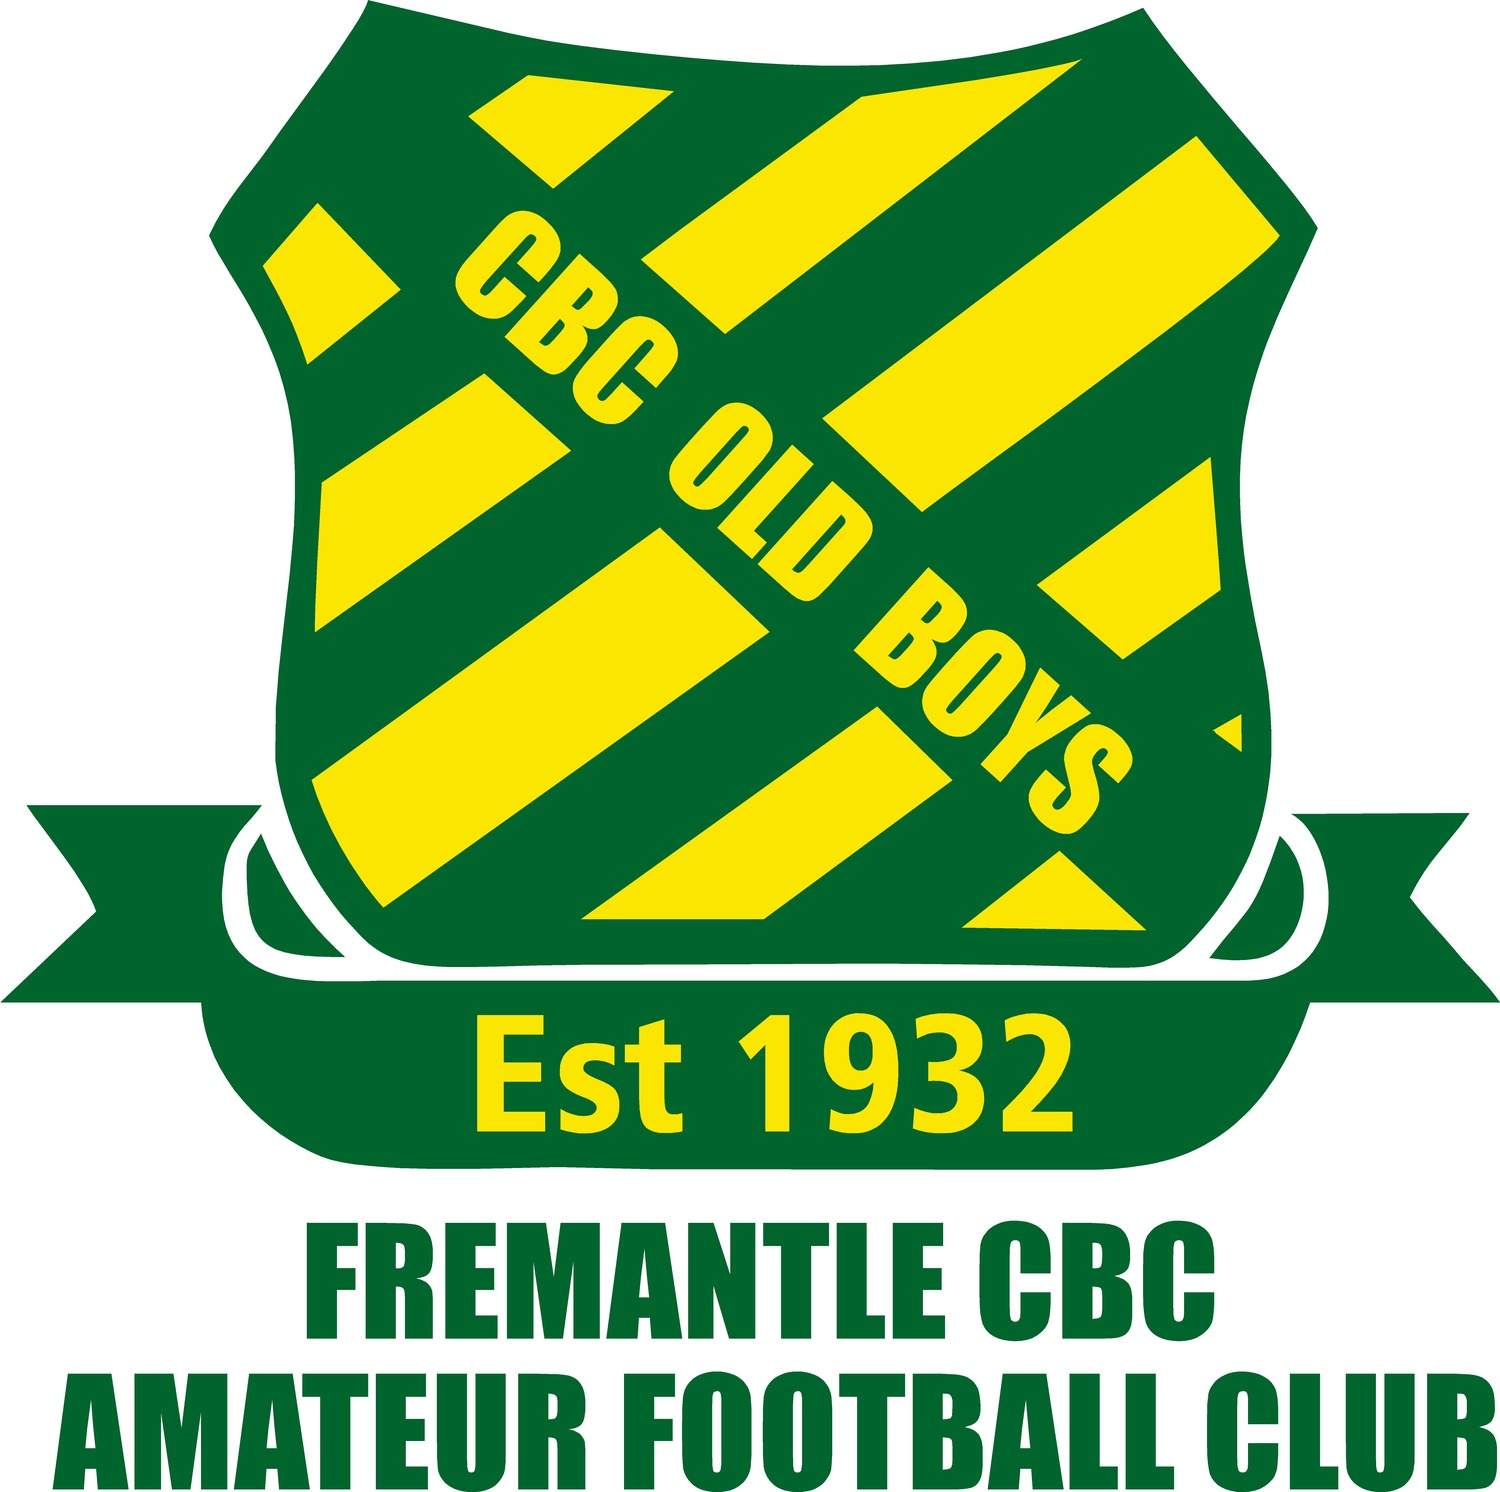 Fremantle CBC Amateur Football Club